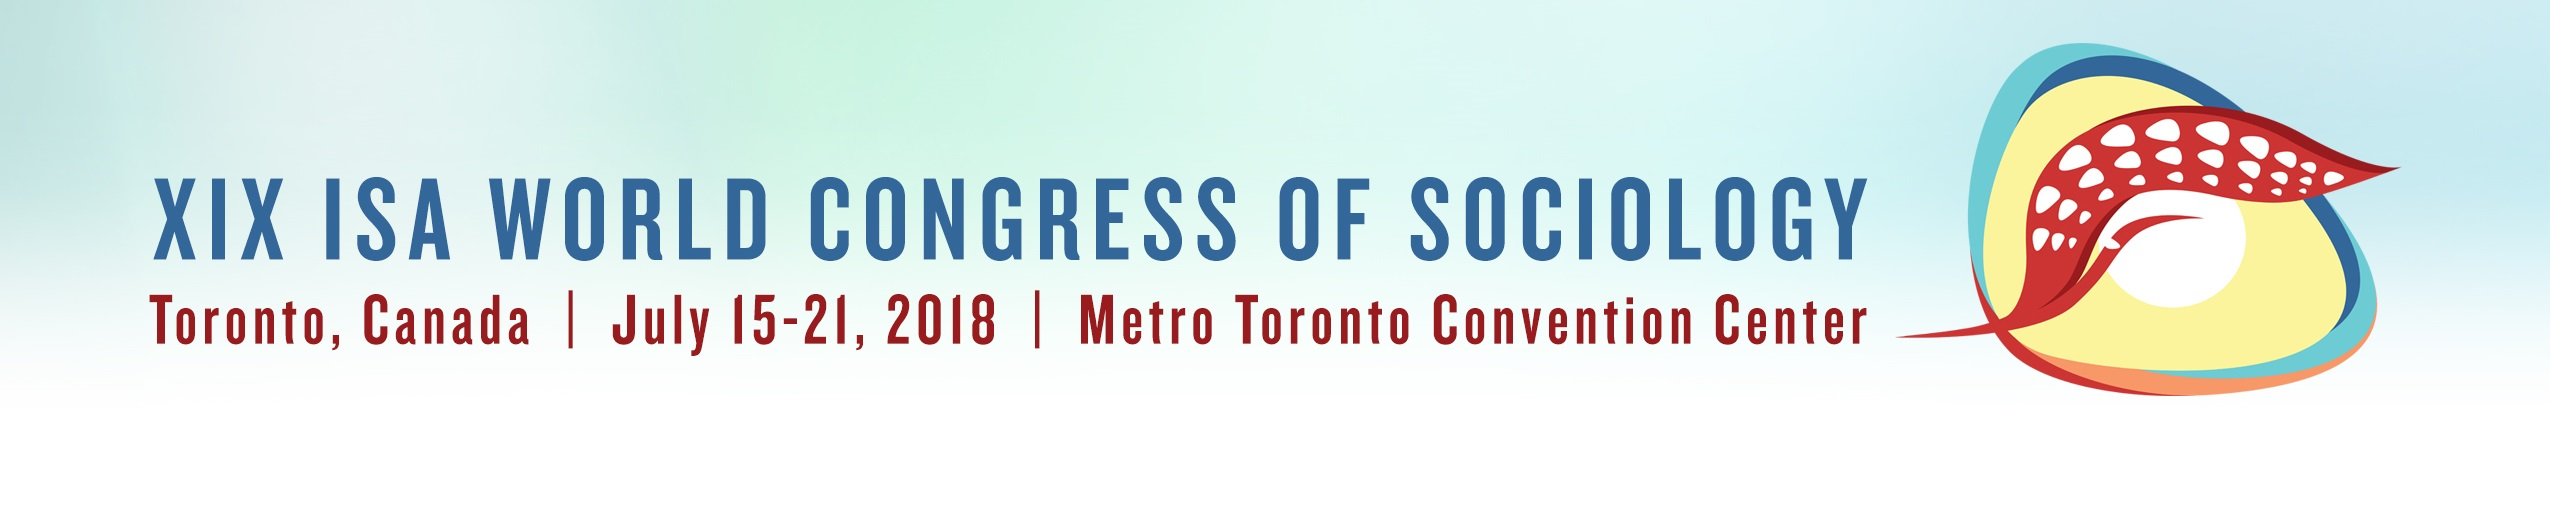 XIX ISA World Congress of Sociology (July 15-21, 2018): https://www.isa-sociology.org/en/conferences/world-congress/toronto-2018/